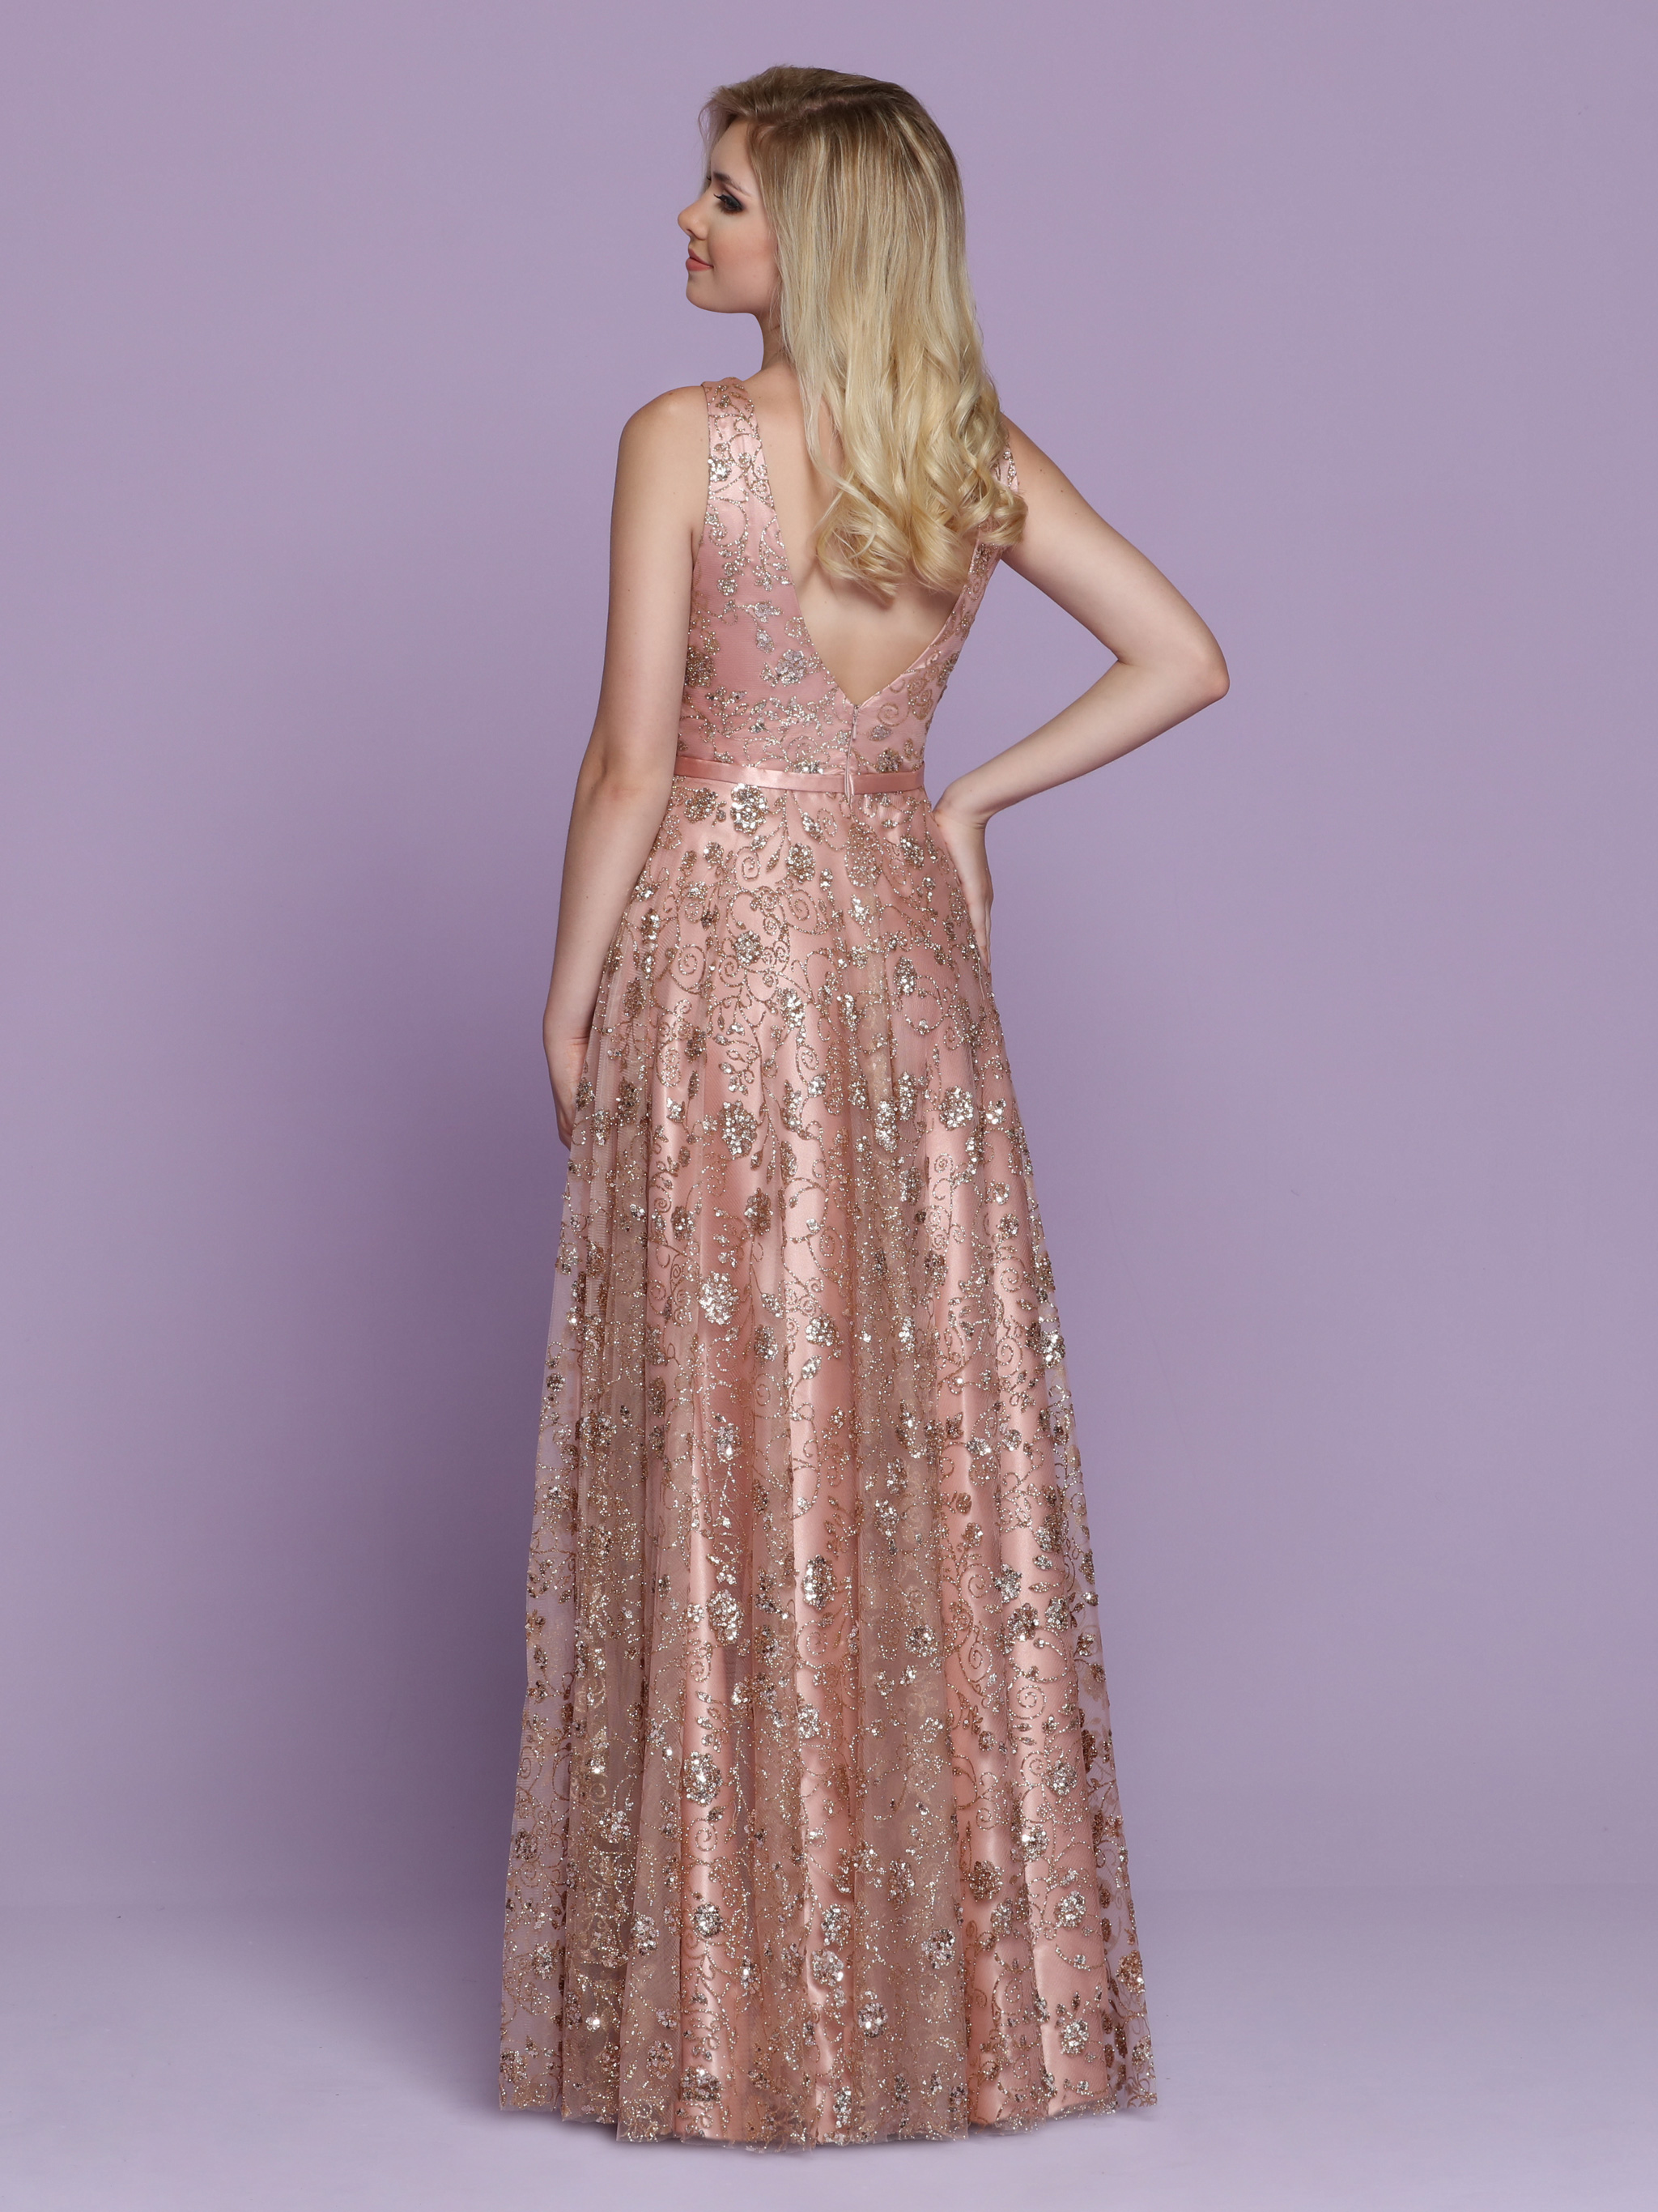 Image showing back view of style #72031